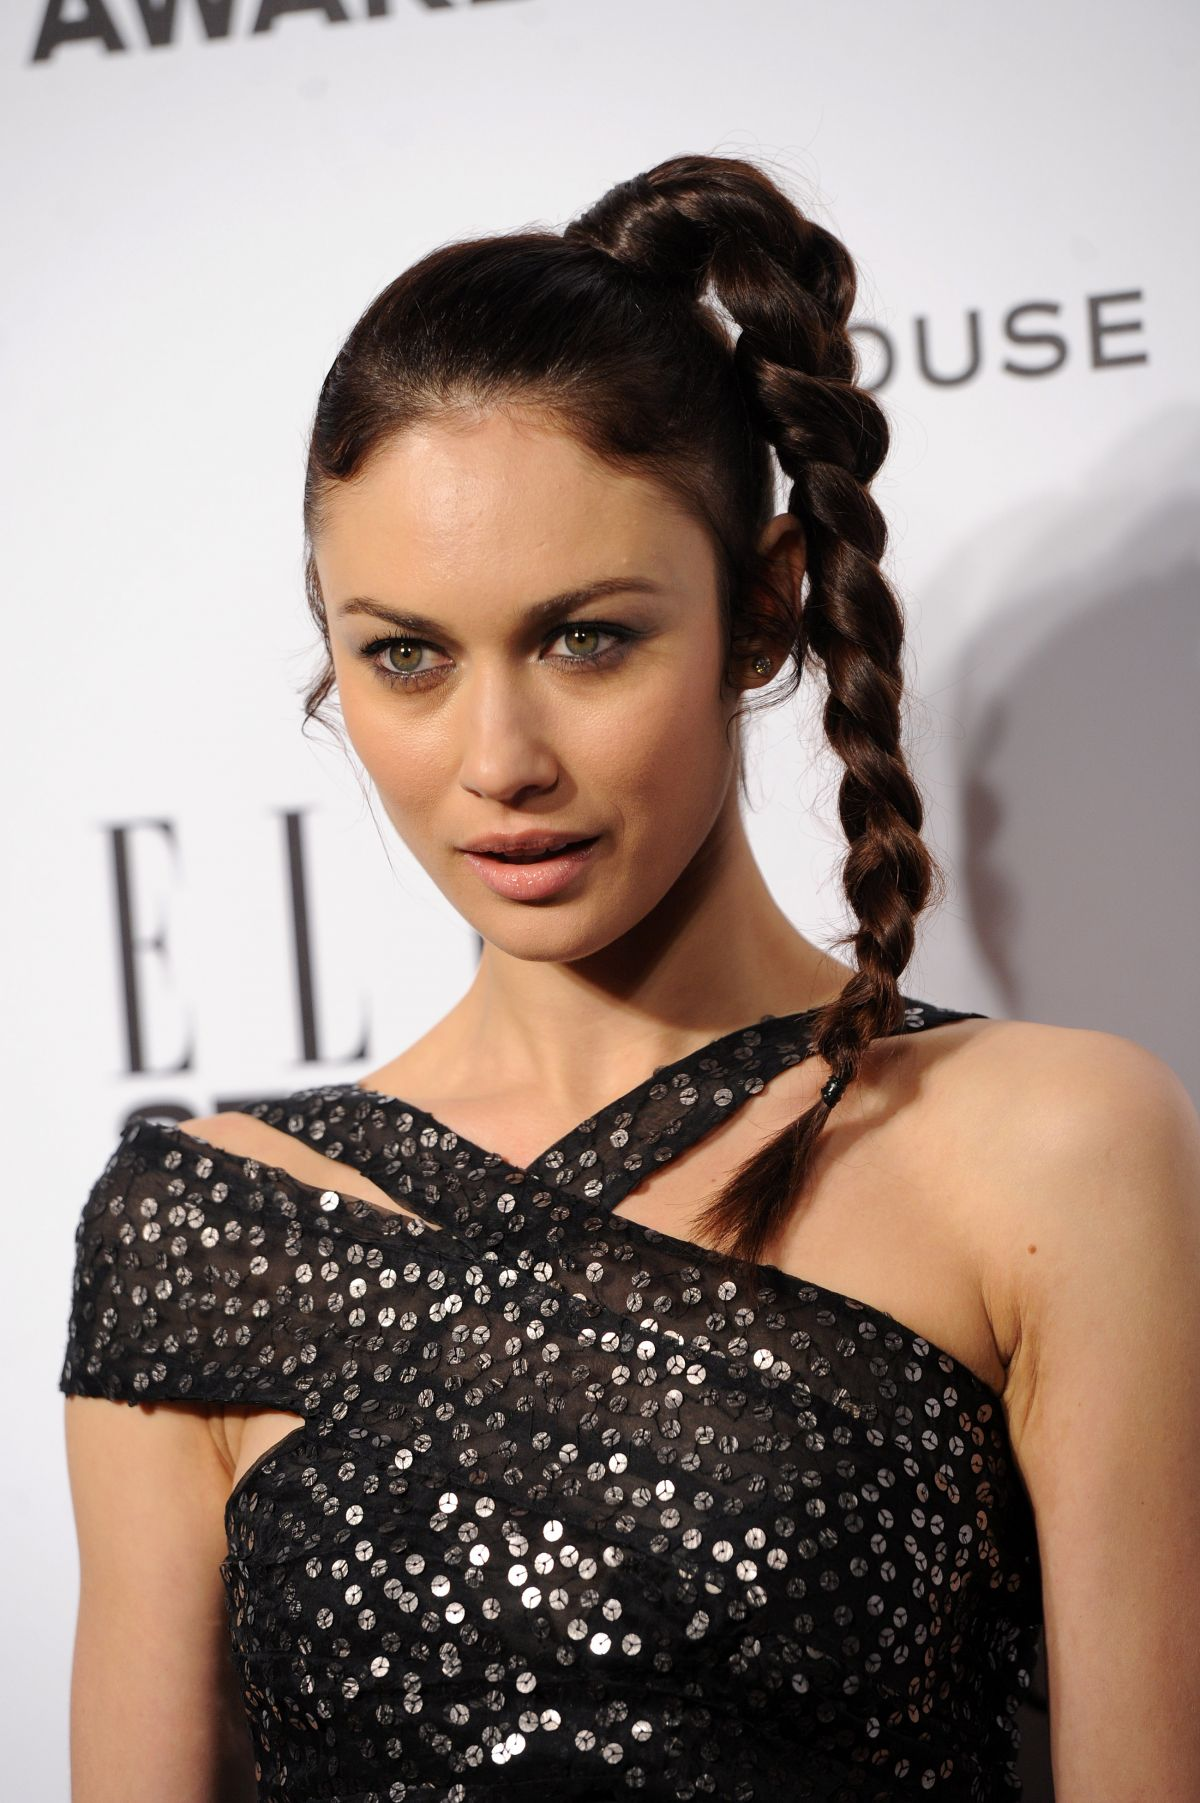 olga kurylenko net worth